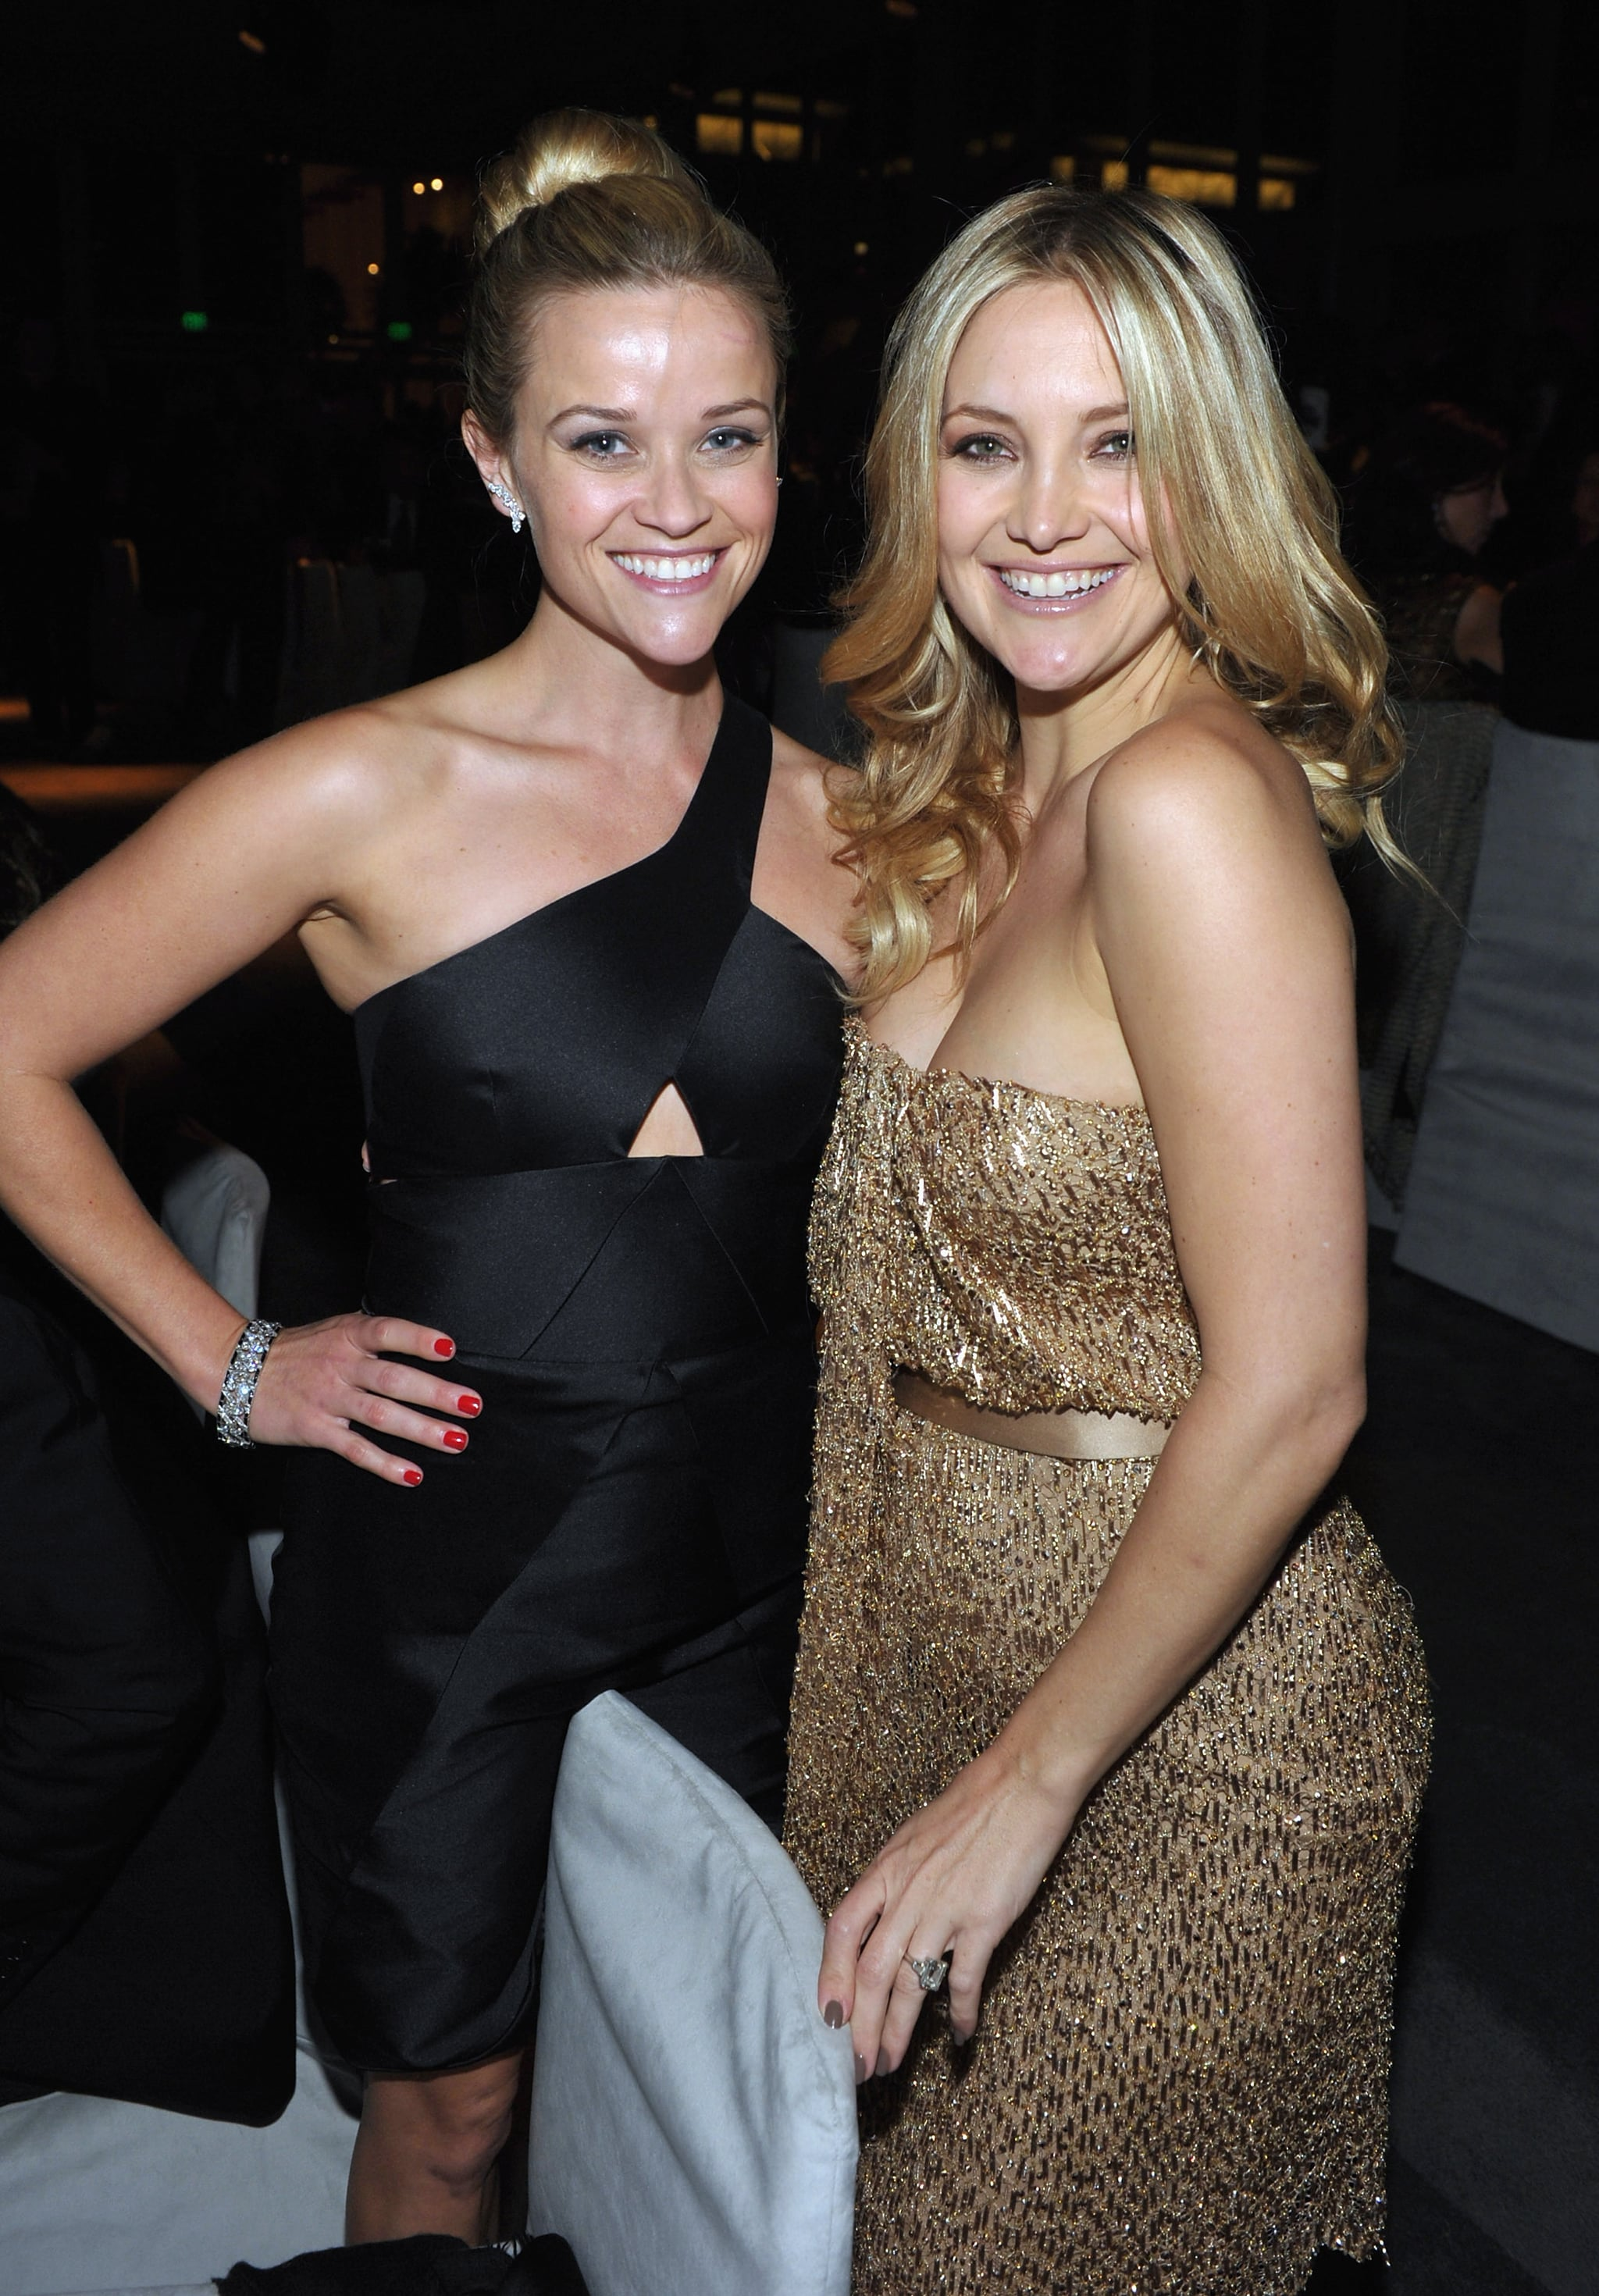 Reese Witherspoon and Kate Hudson hung out inside LACMA's Art + Film bash.